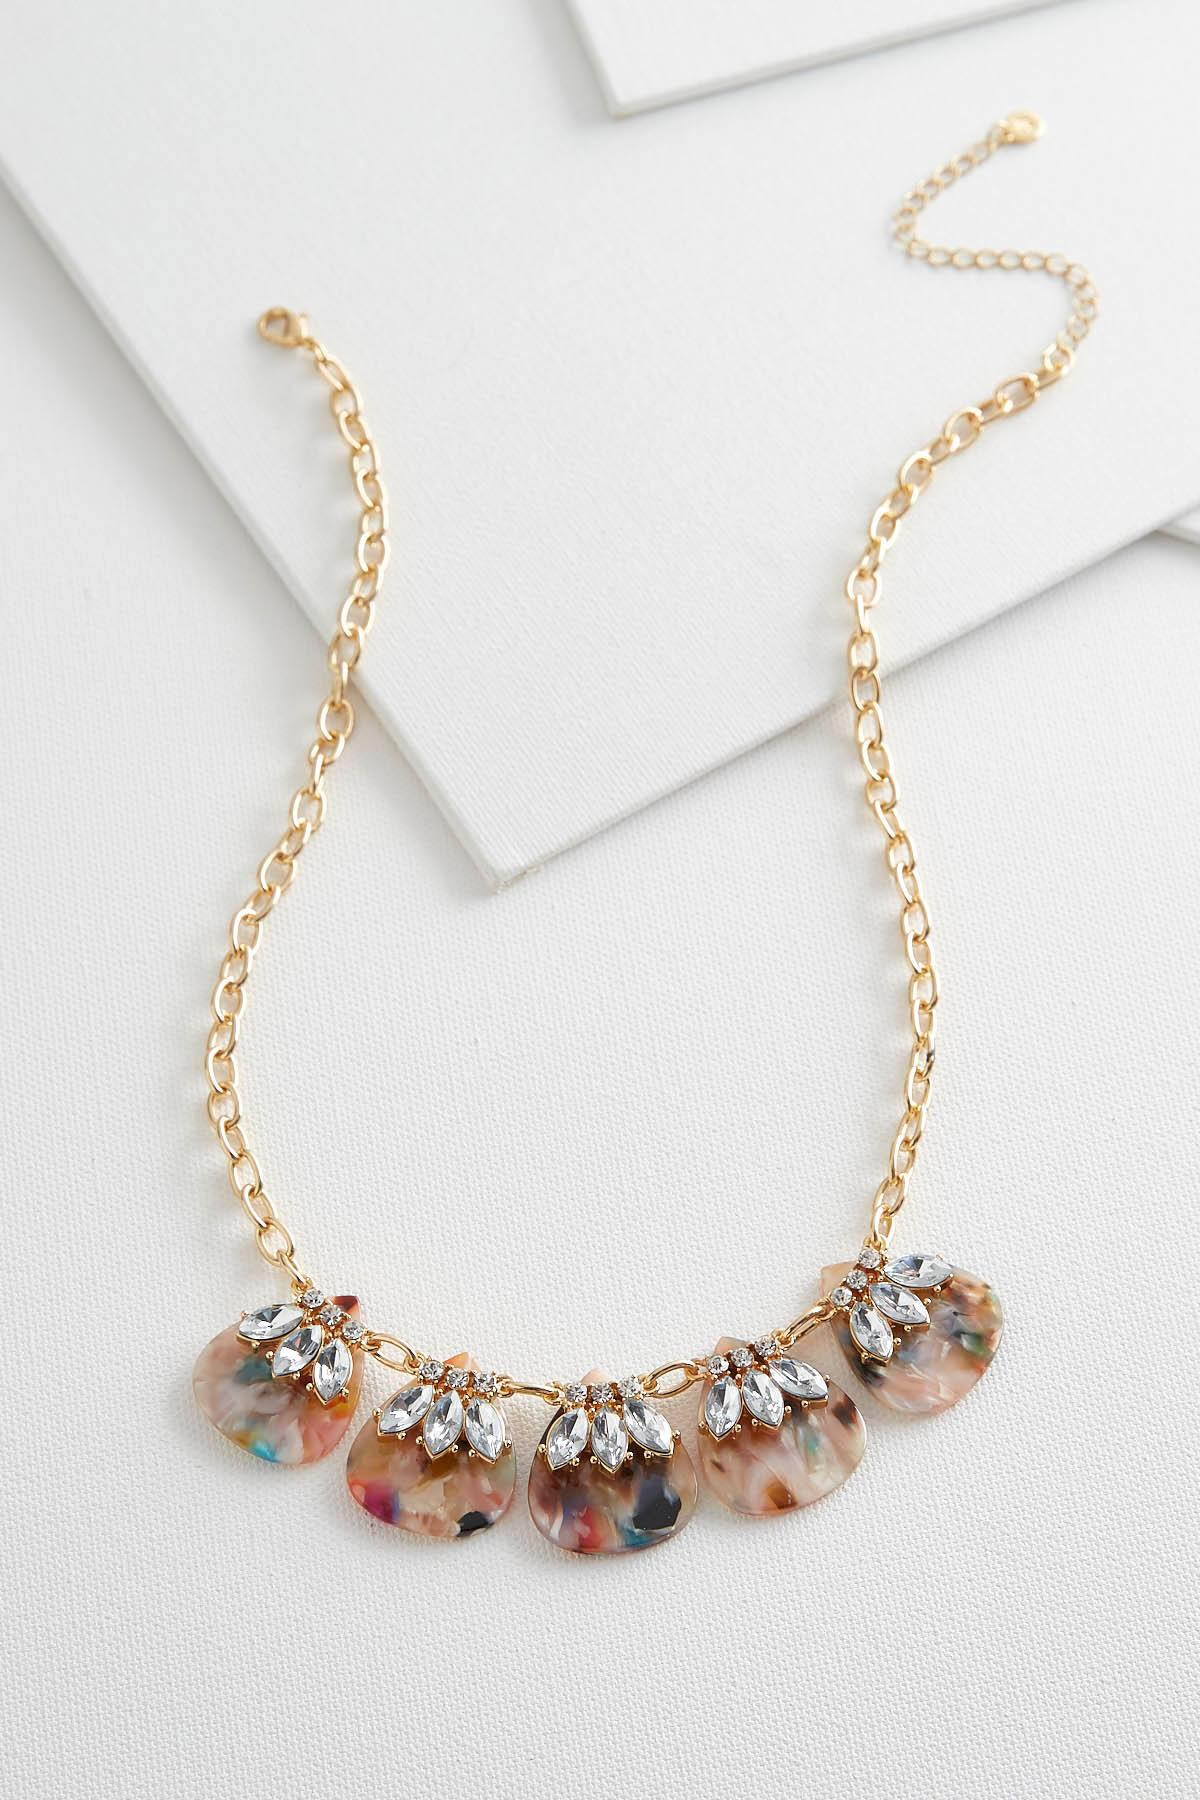 Marbled Resin Bib Necklace